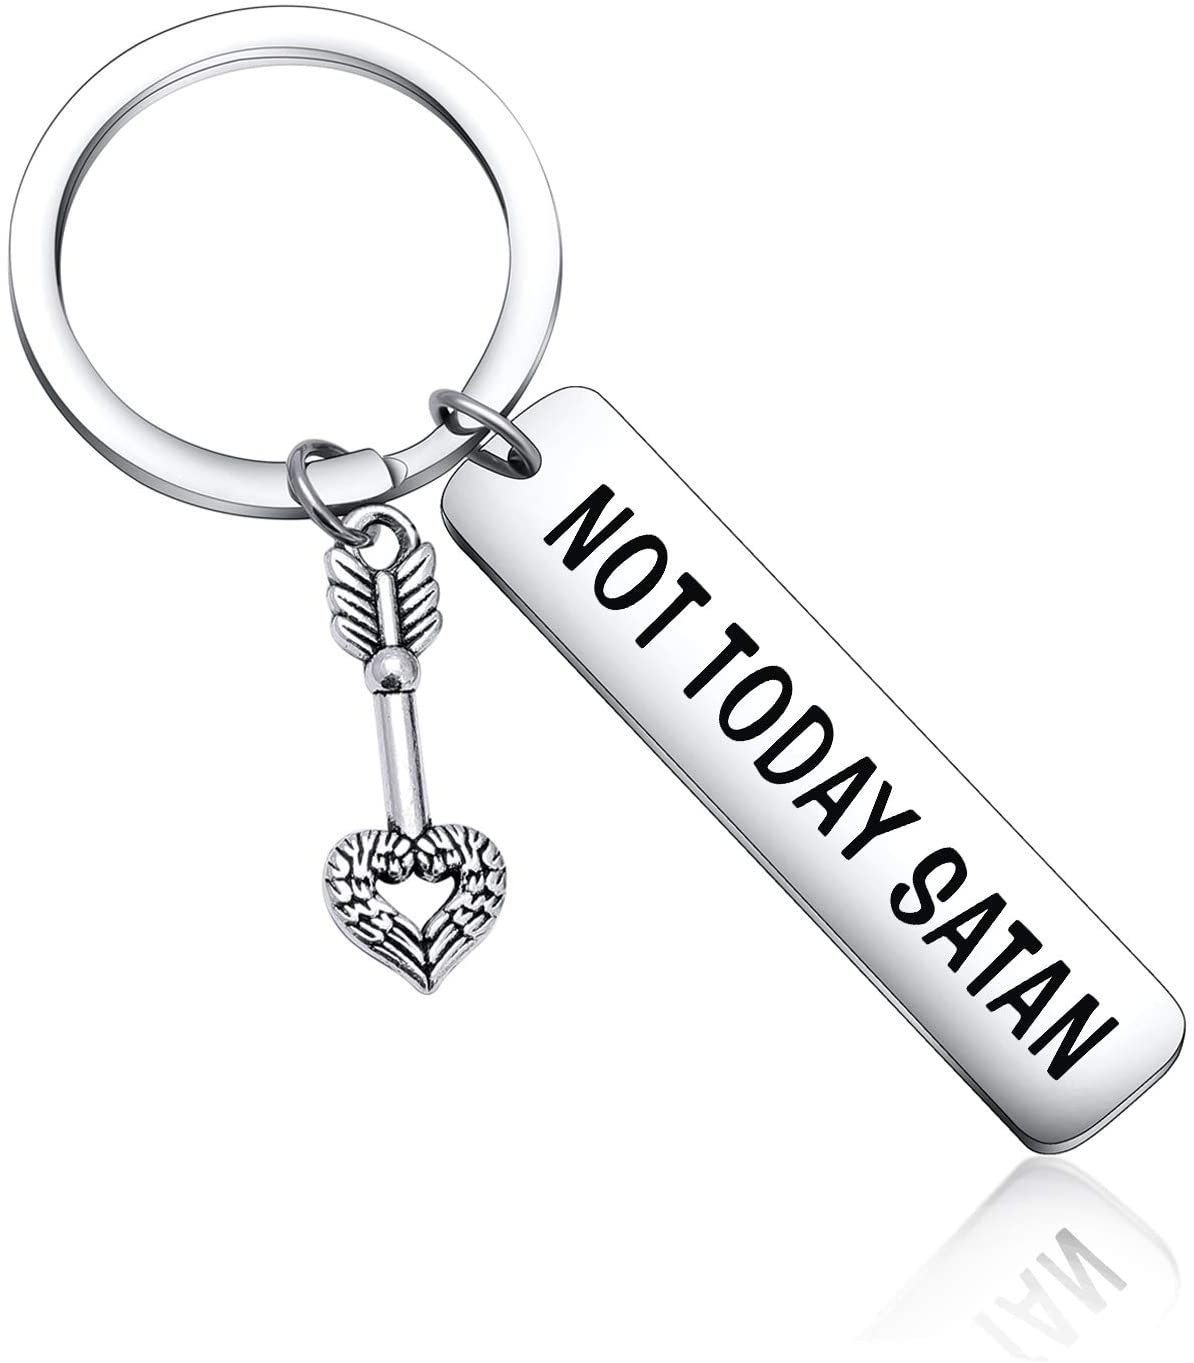 Not Today Satan Keychain Inspirational Gift for Best Friend Gift Motivational Keychain Best Friend Keychain Inspirational Keychain for Brother Gift Sister Gift Daughter in Law Gift Religious Keychain